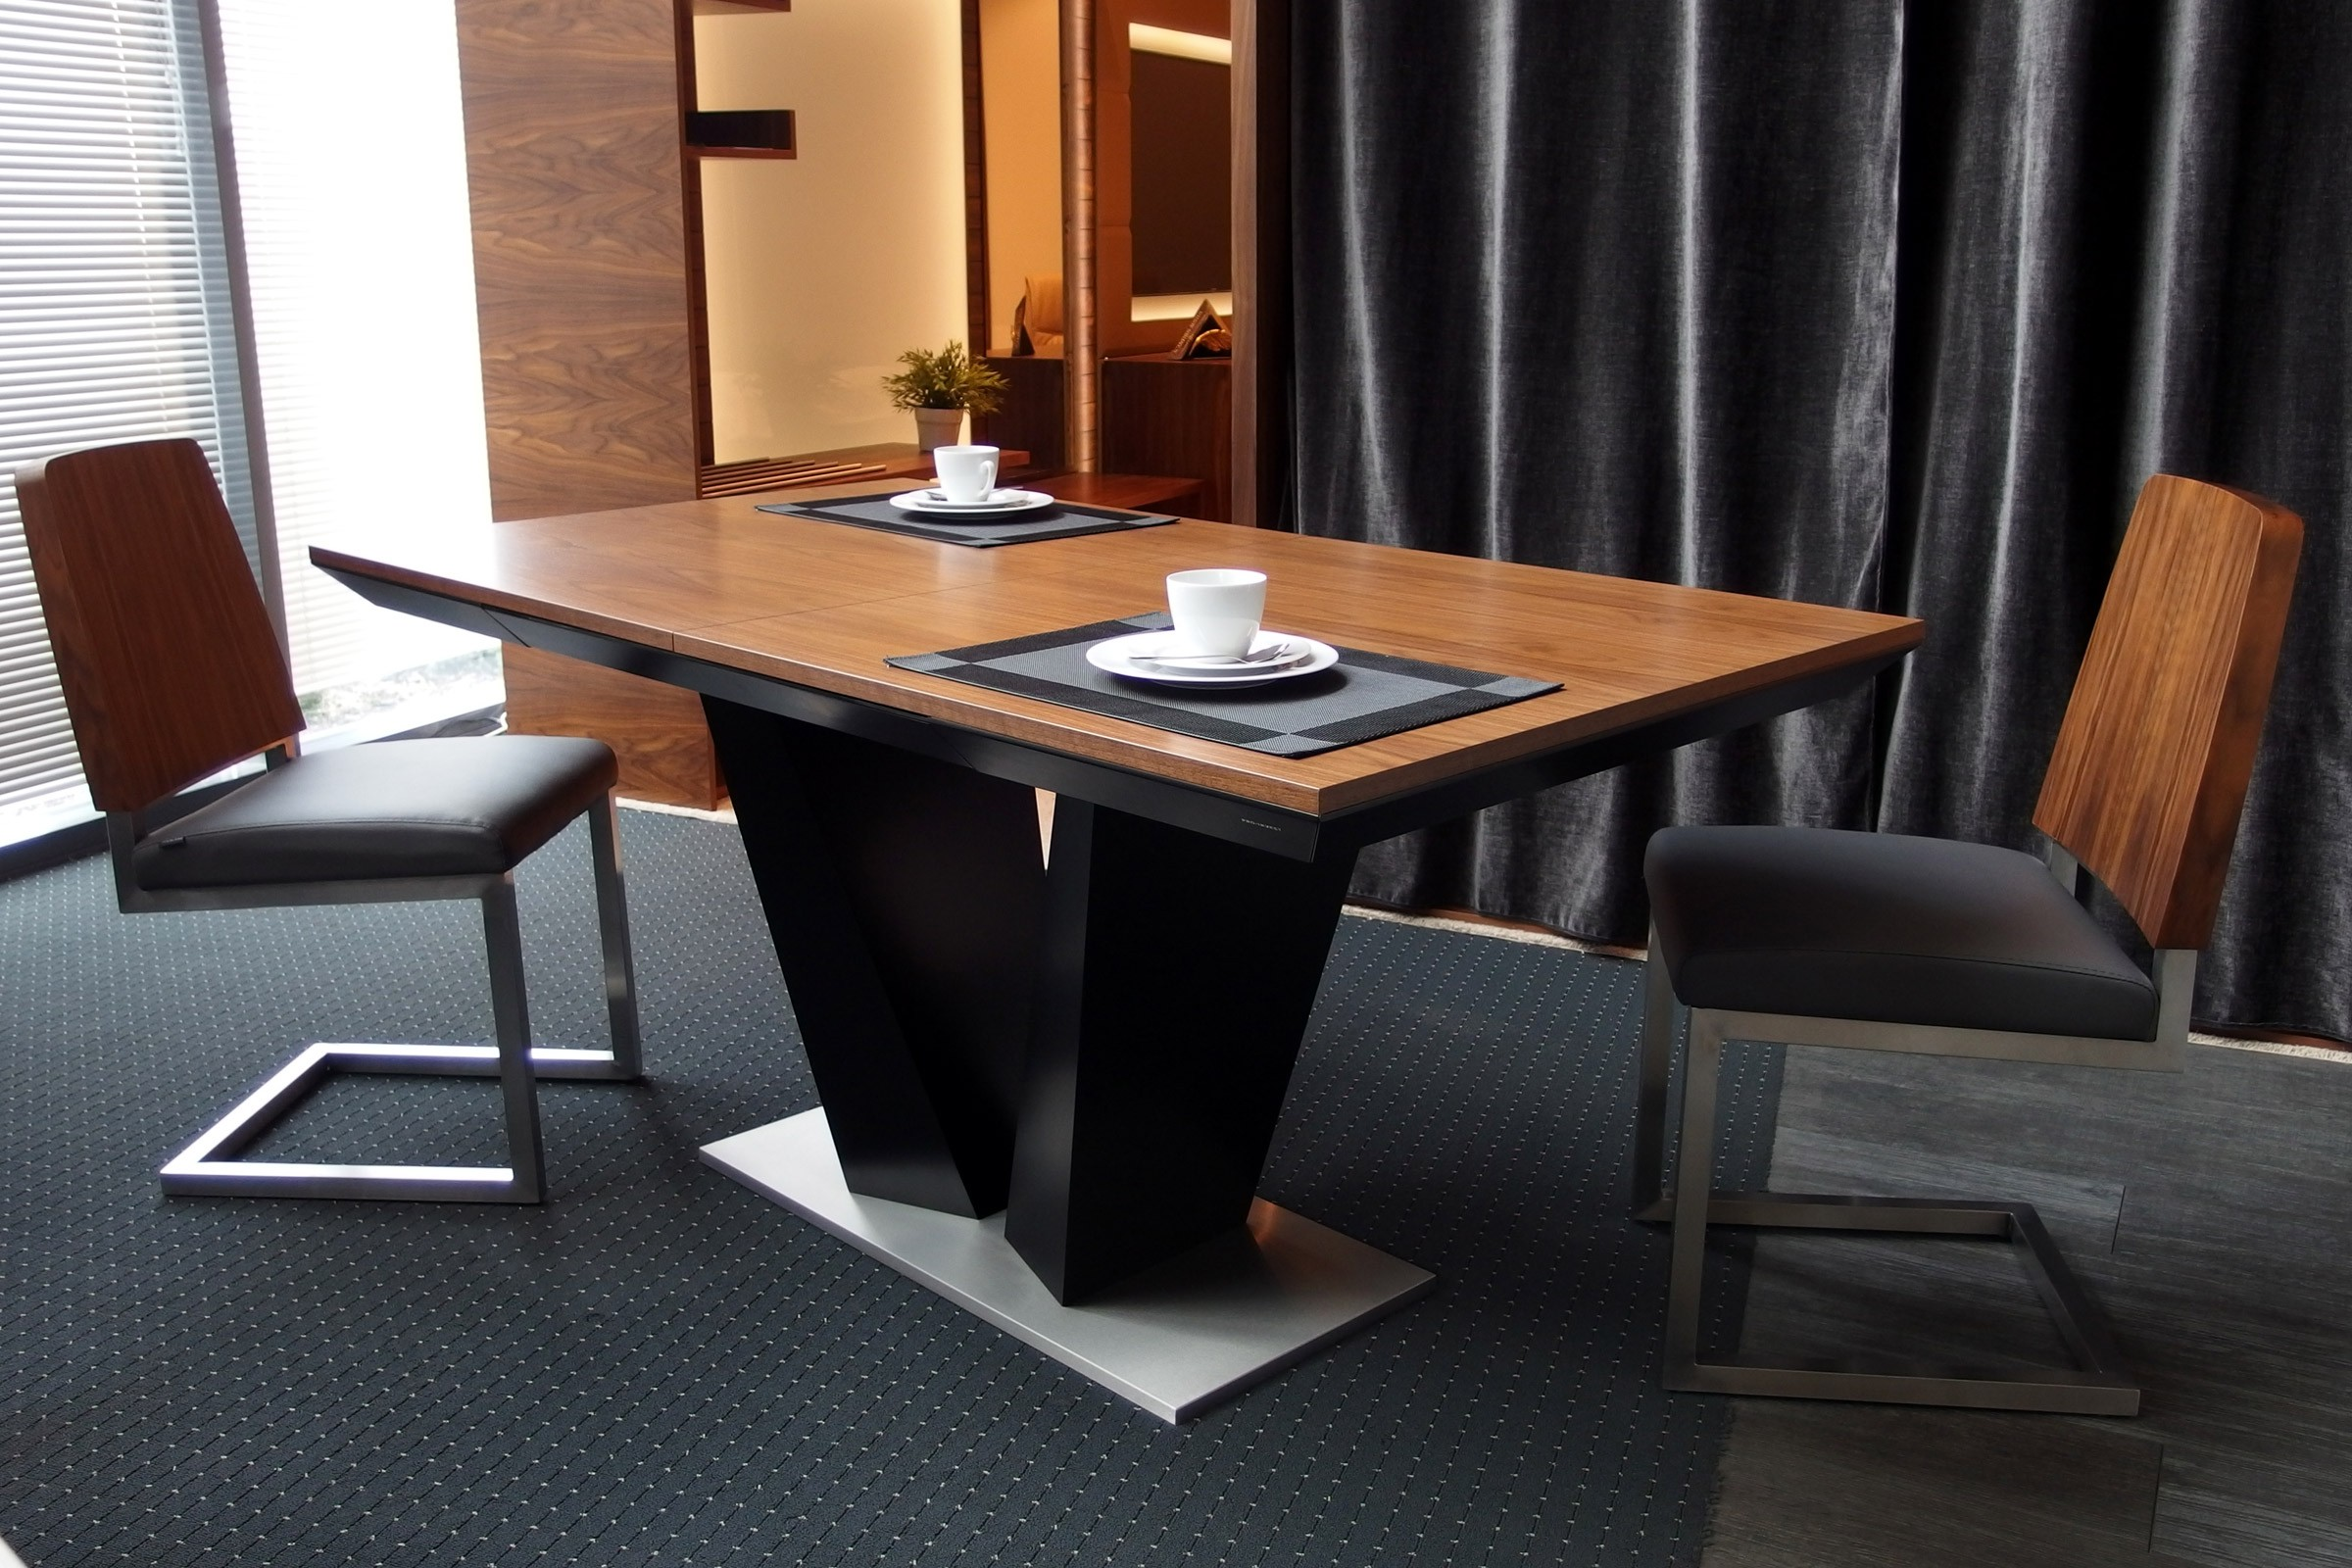 dcfa7f53fbf0 Impact bespoke extending dining table - Dining tables (2287) - Sena Home  Furniture